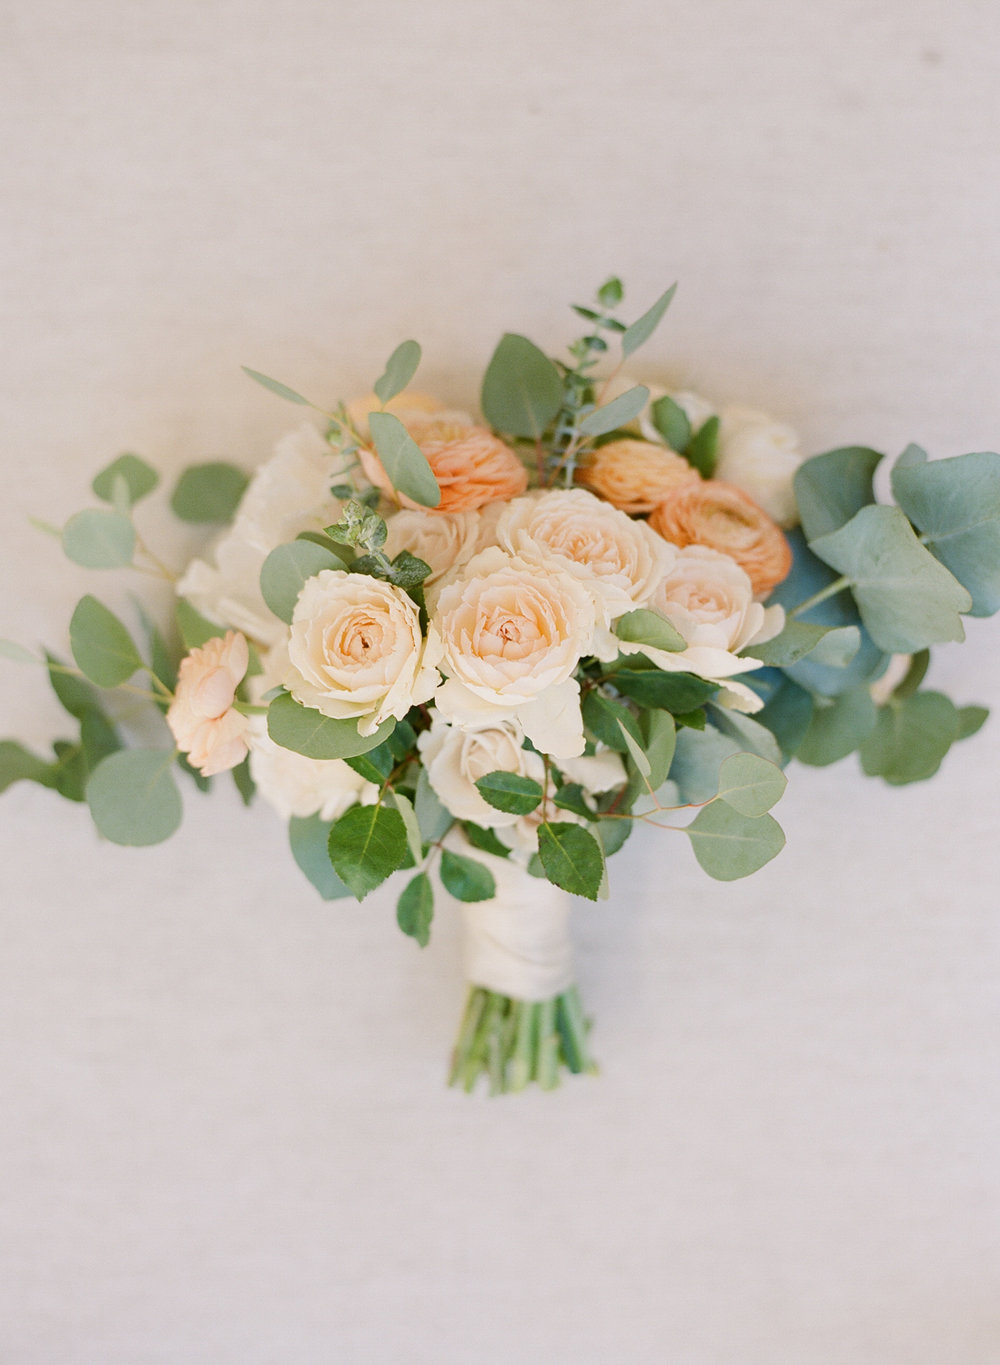 Eucalyptus leaves and pale pink and orange ranunculus bouquet; Sylvie Gil Photography